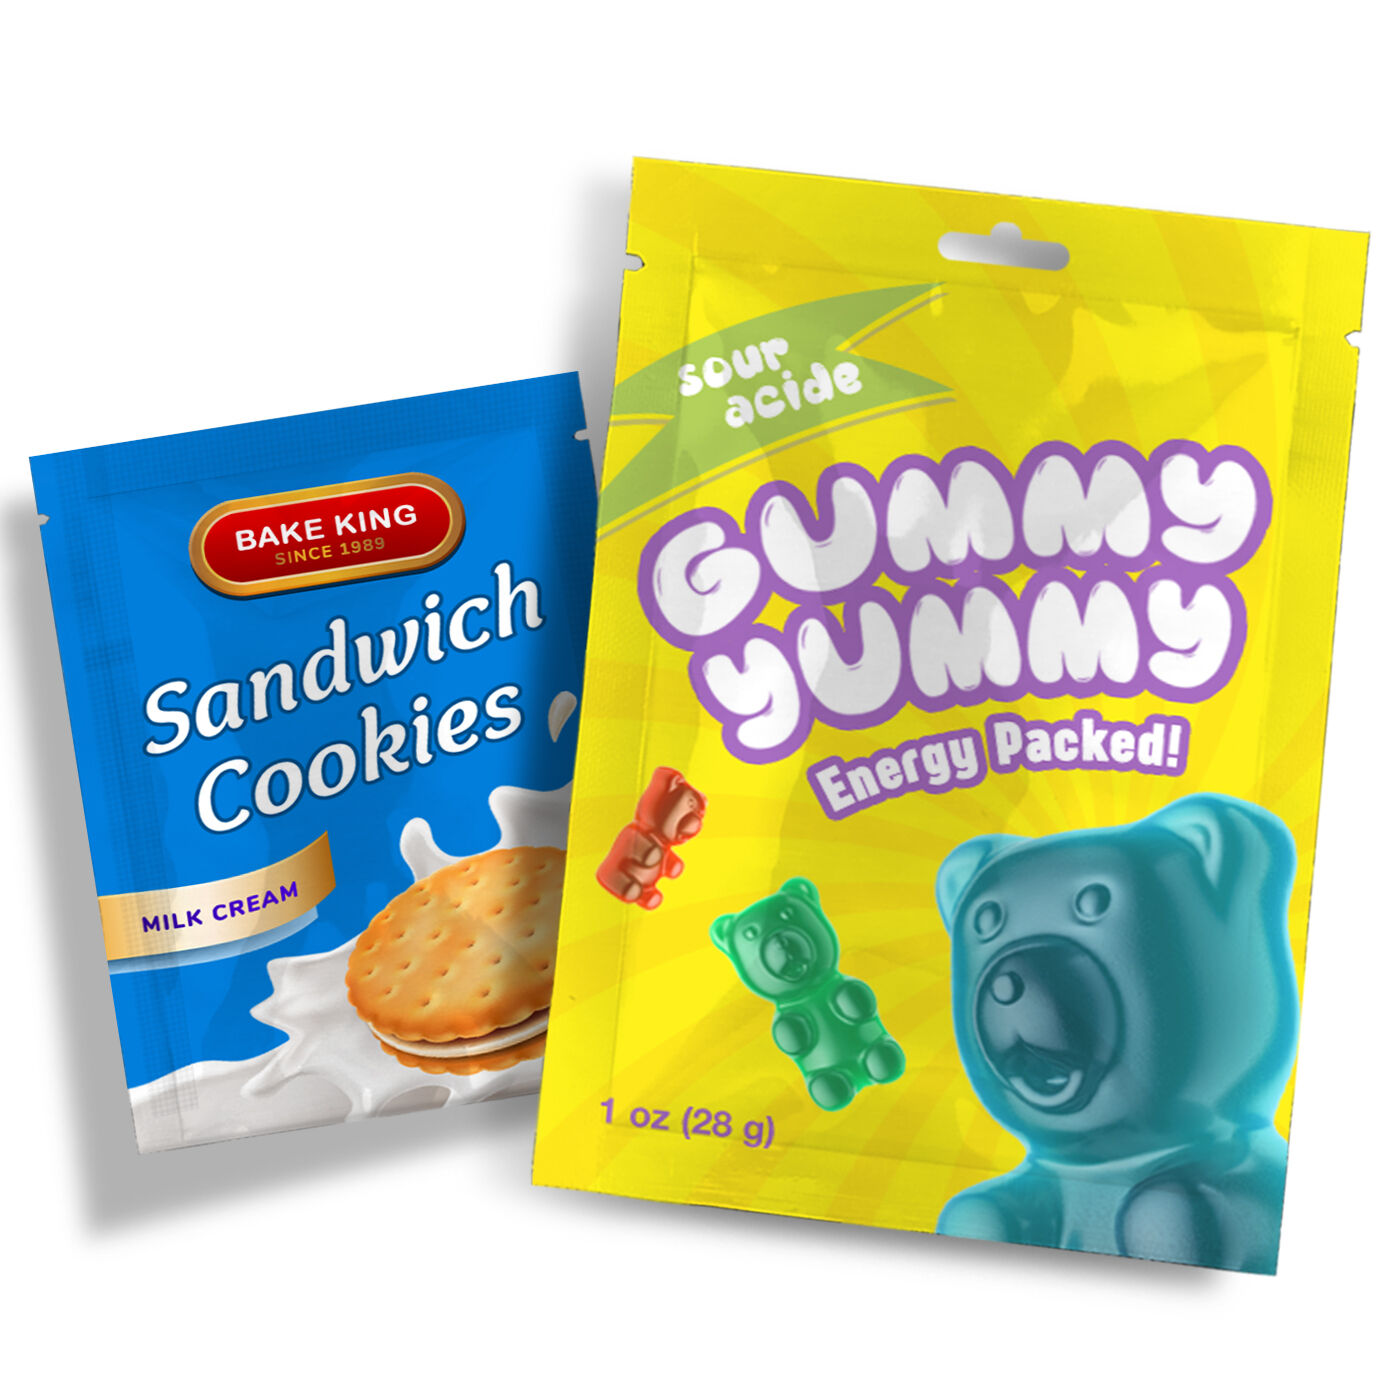 flat pouches for candies and powdered drinks